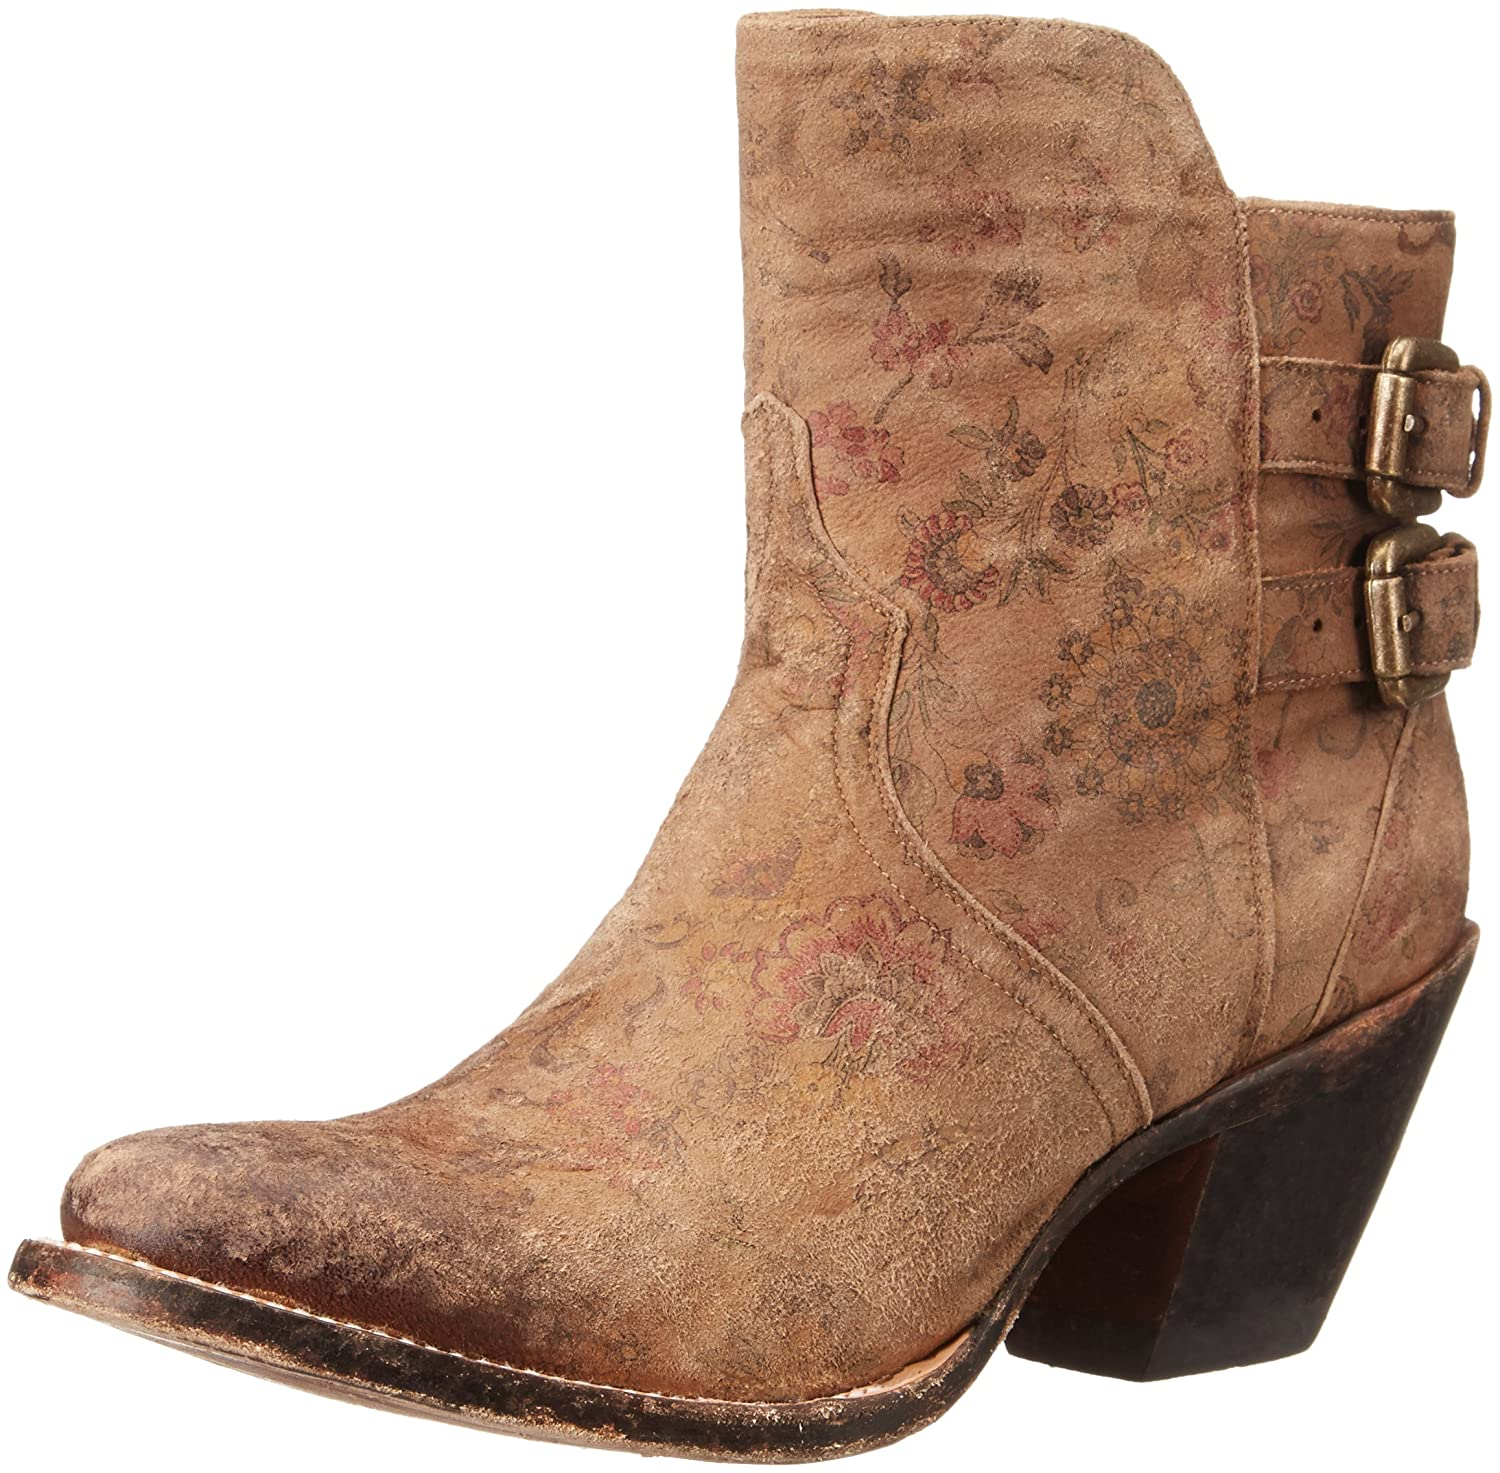 Lucchese Bootmaker Women's Catalina-Brown Floral Printed Shortie Ankle Bootie B00SBHZDM4 9.5 B(M) US|Brown